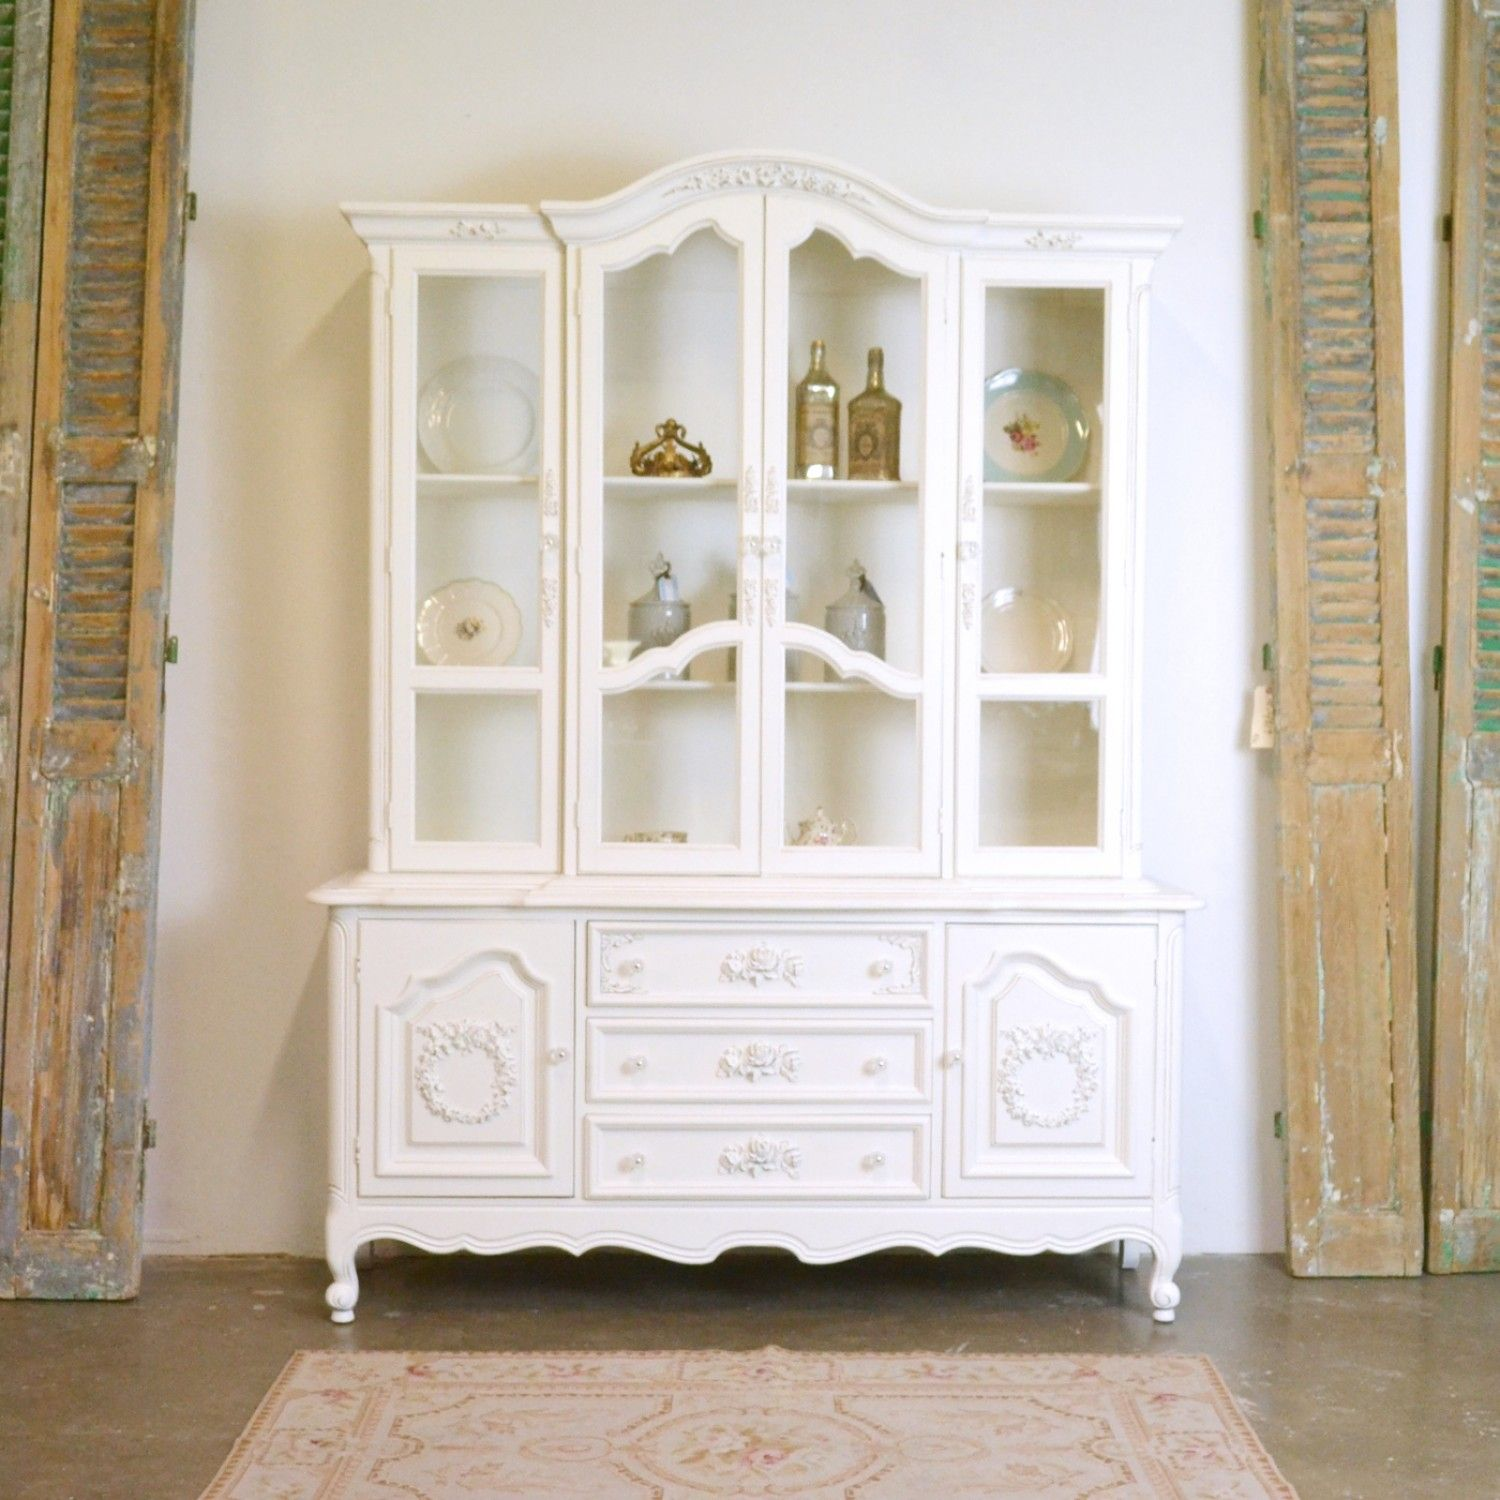 Large China Cabinet With Glass Doors 1195 00 Thebellacottage Shabbychic Glass Cabinet Doors Large China Cabinet China Cabinet